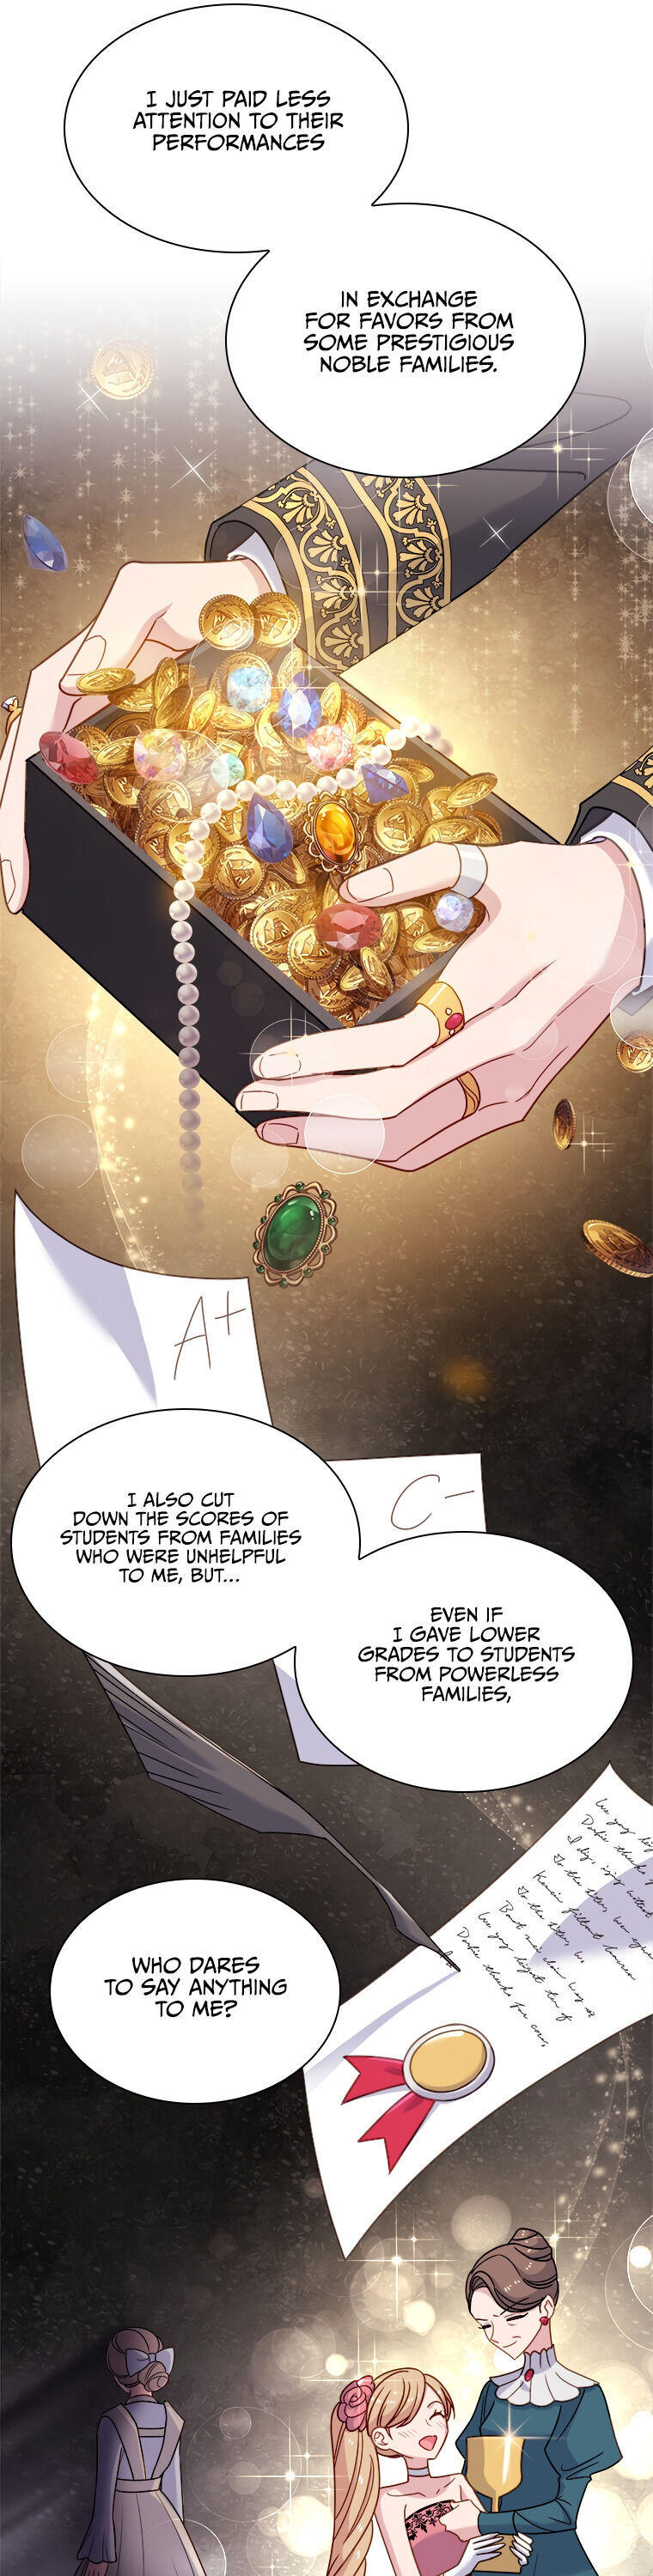 The Lady Wants To Rest (Promo) Chapter 39 page 16 - Mangakakalots.com